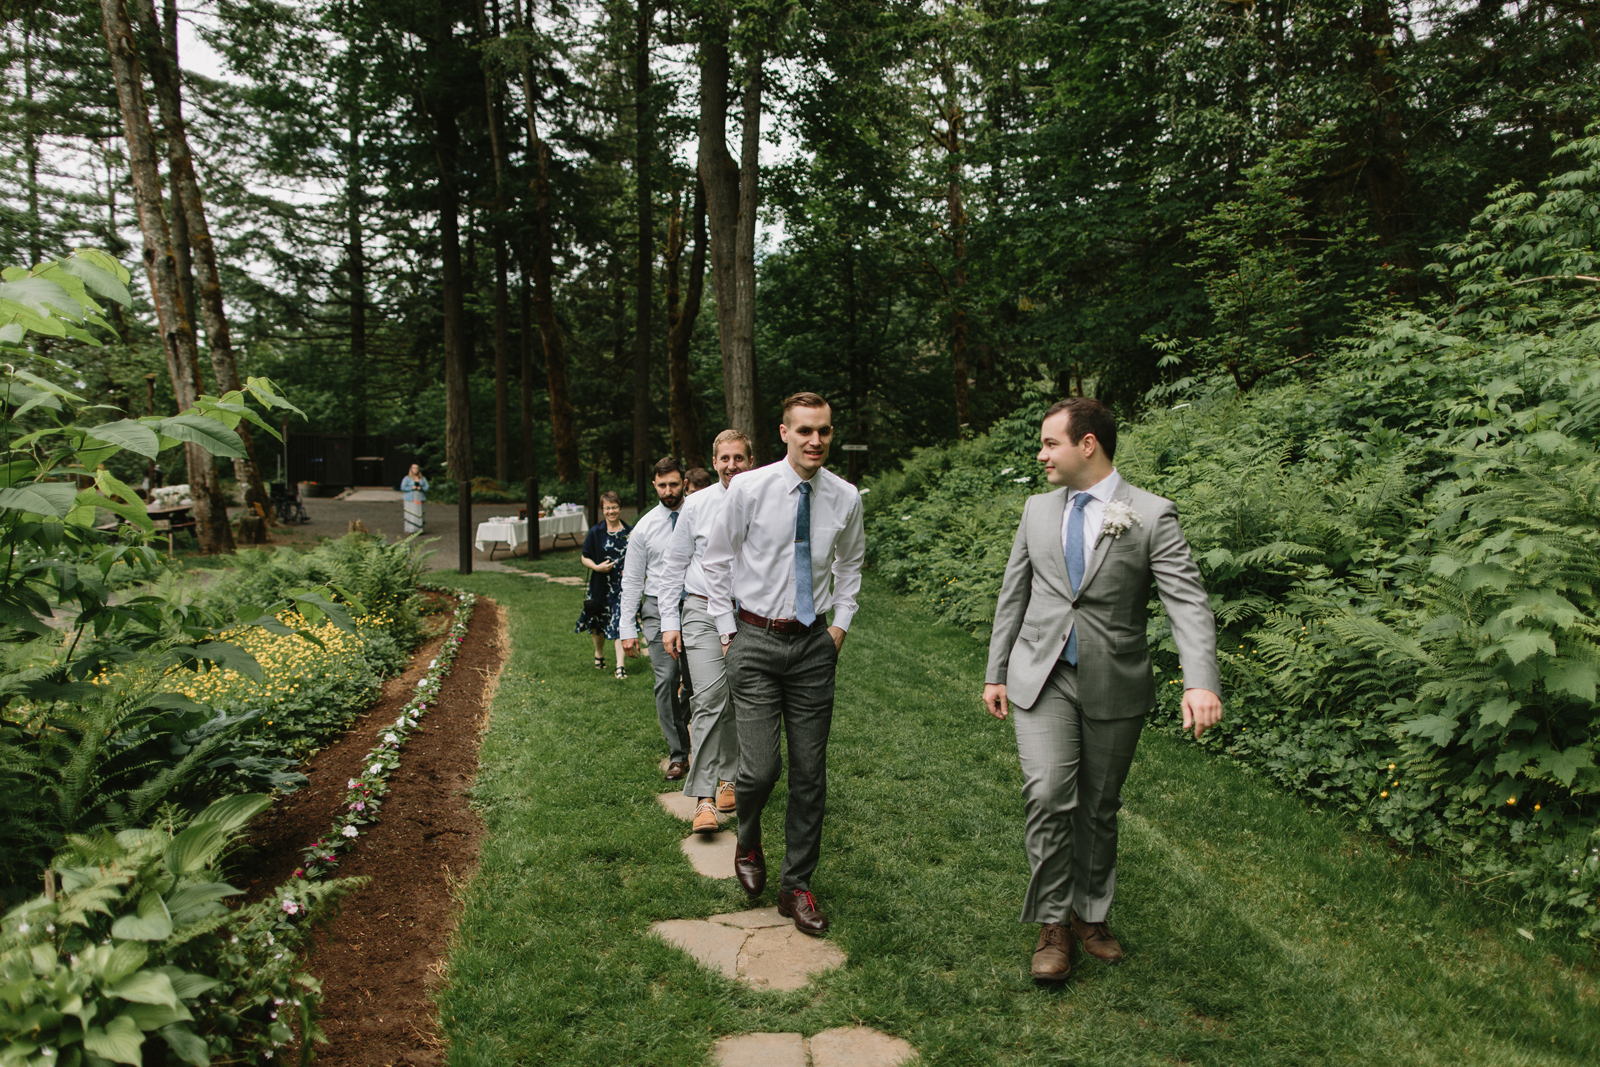 The groom and groomsmen make their way to the ceremony site at Bridal Veil Lakes in Corbett, OR